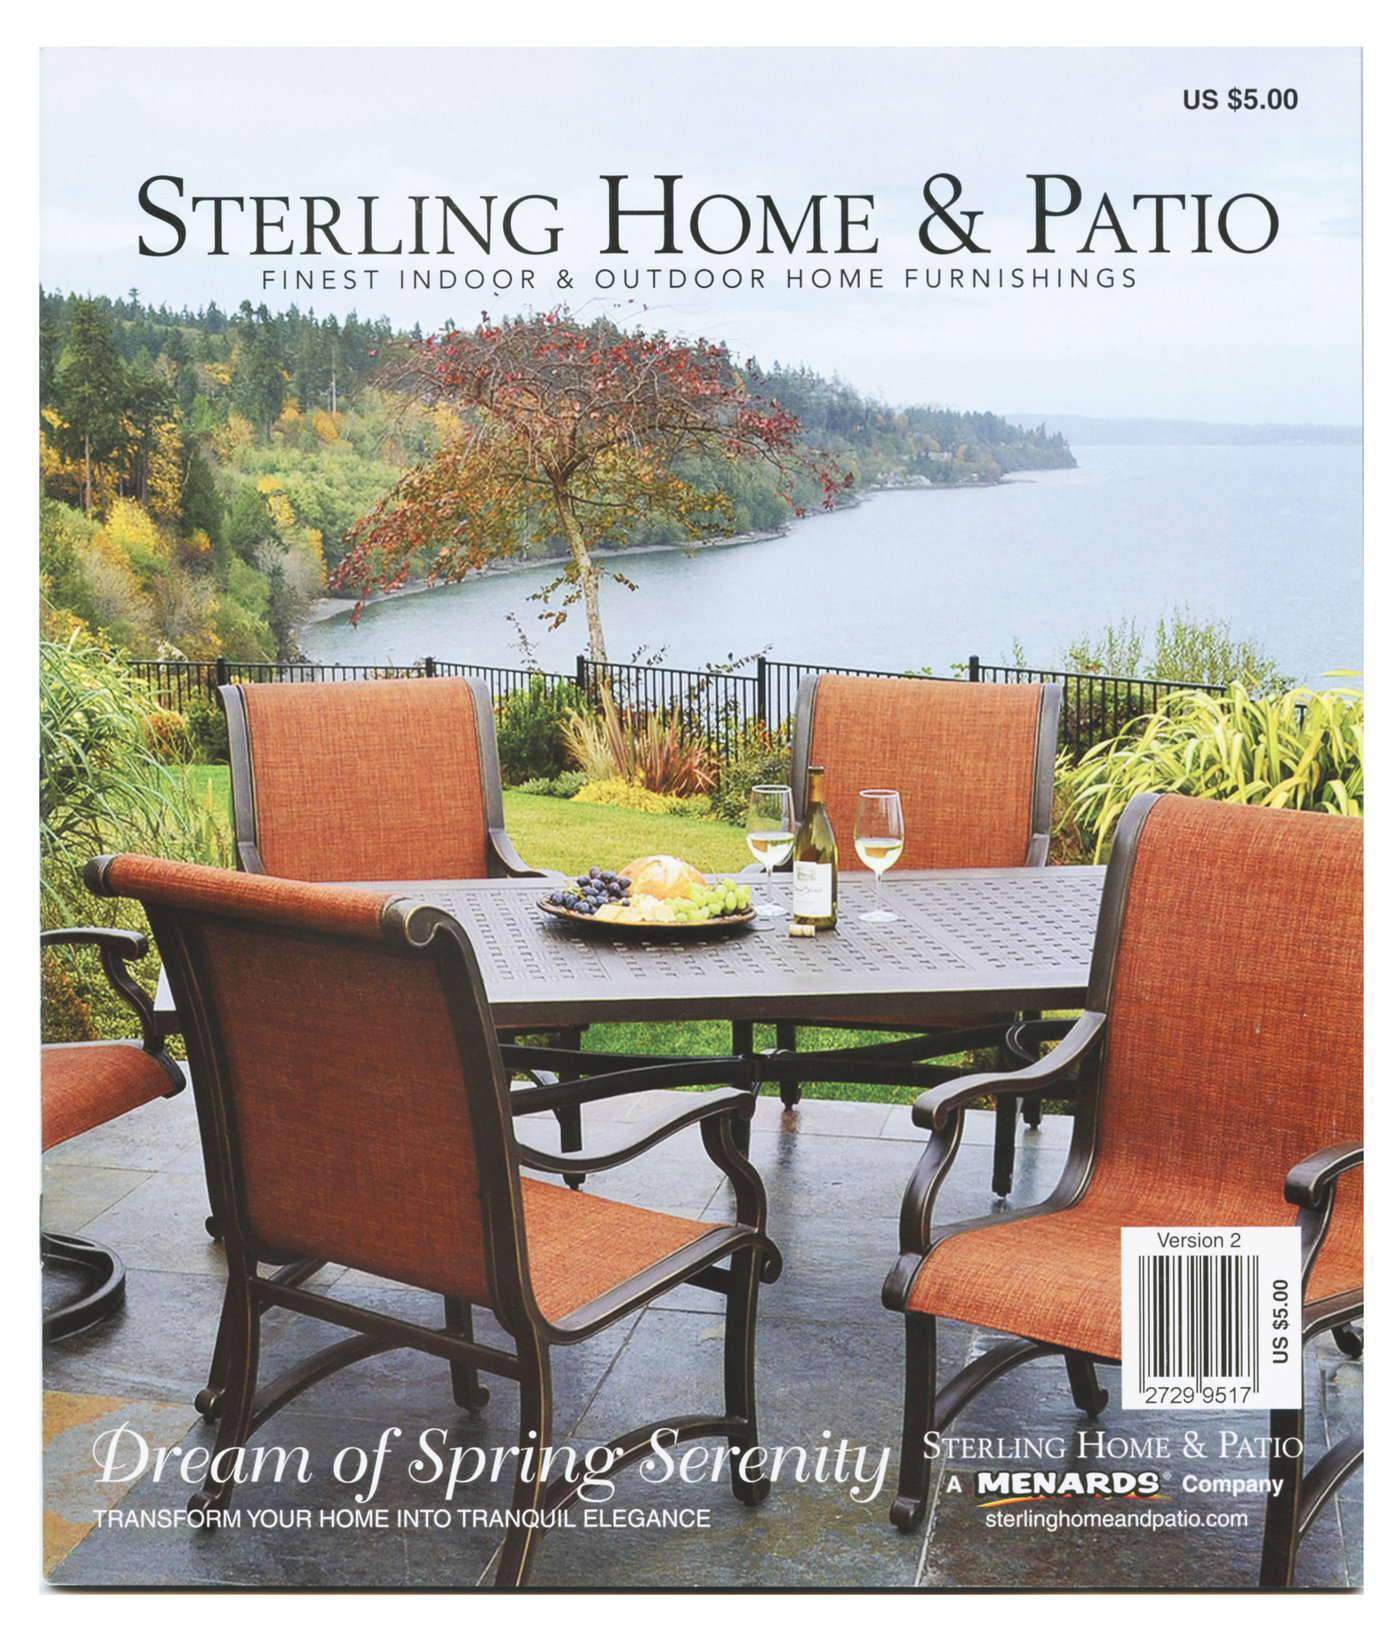 Sterling Home U0026 Patio Catalogs, Flyers, Artwork U0026 Website (Menards) By Lisa  Schwennsen At Coroflot.com